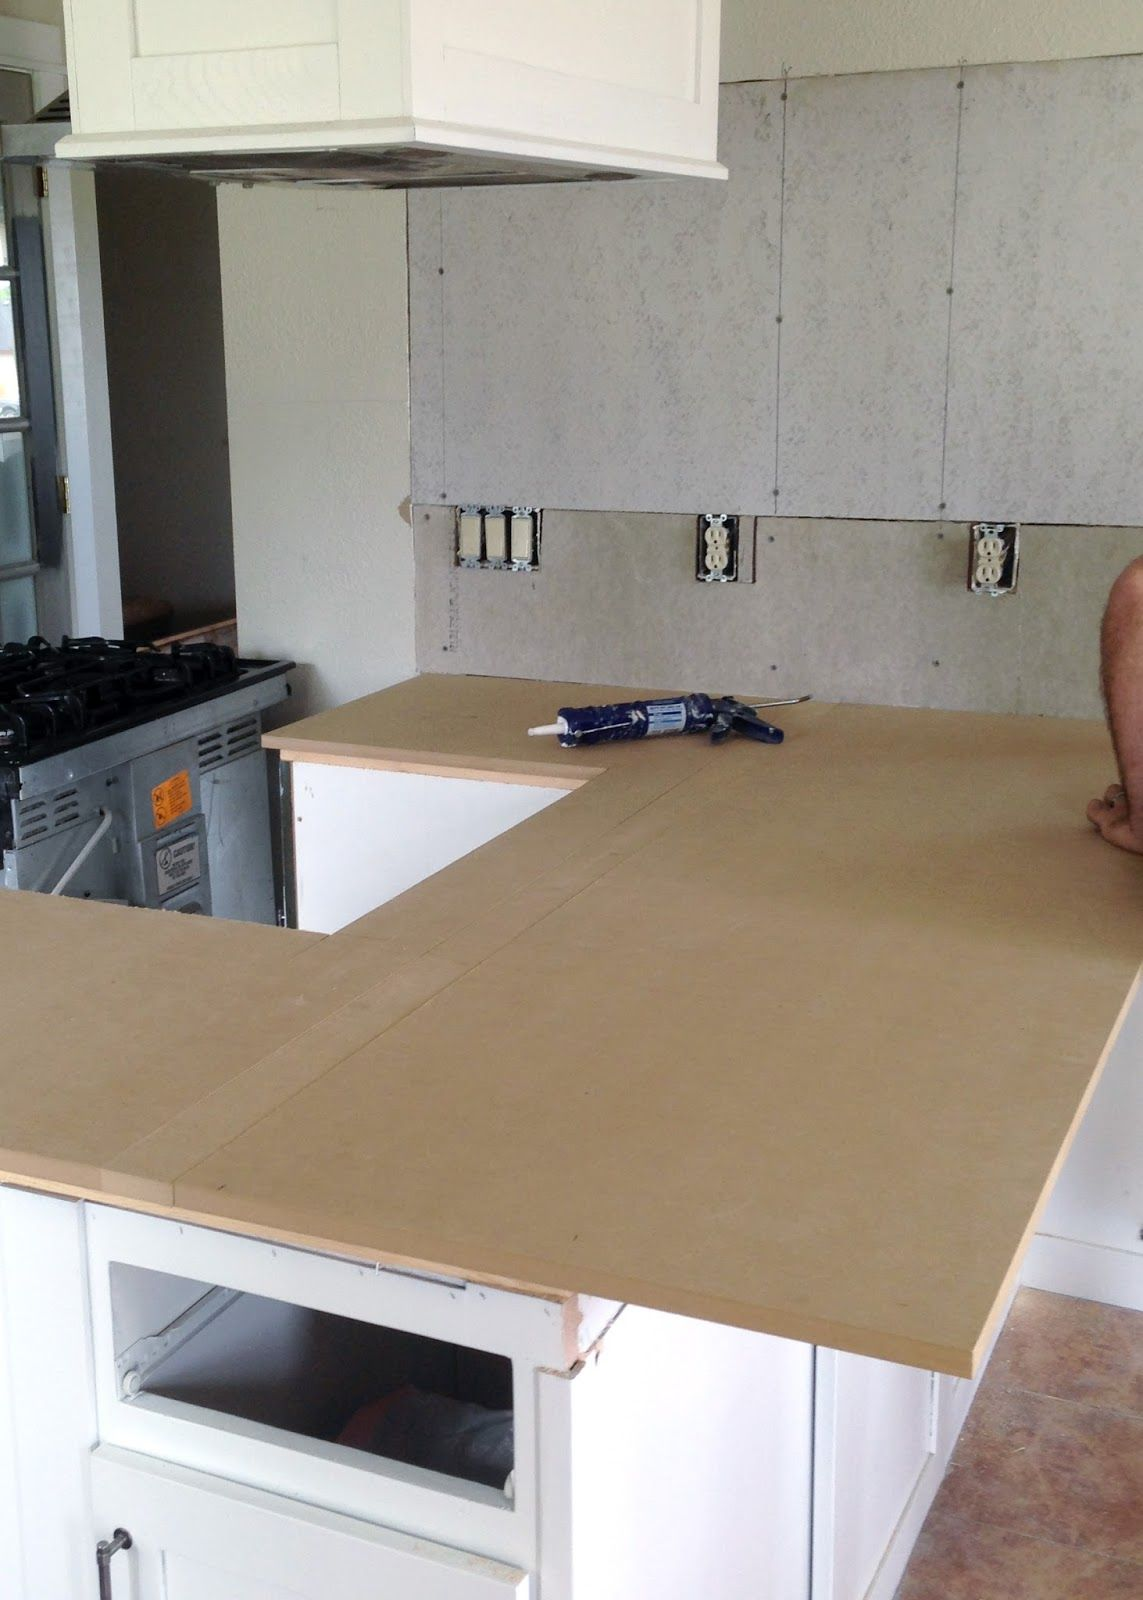 Diy Reclaimed Wood Countertop Adding A Layer Of Mdf